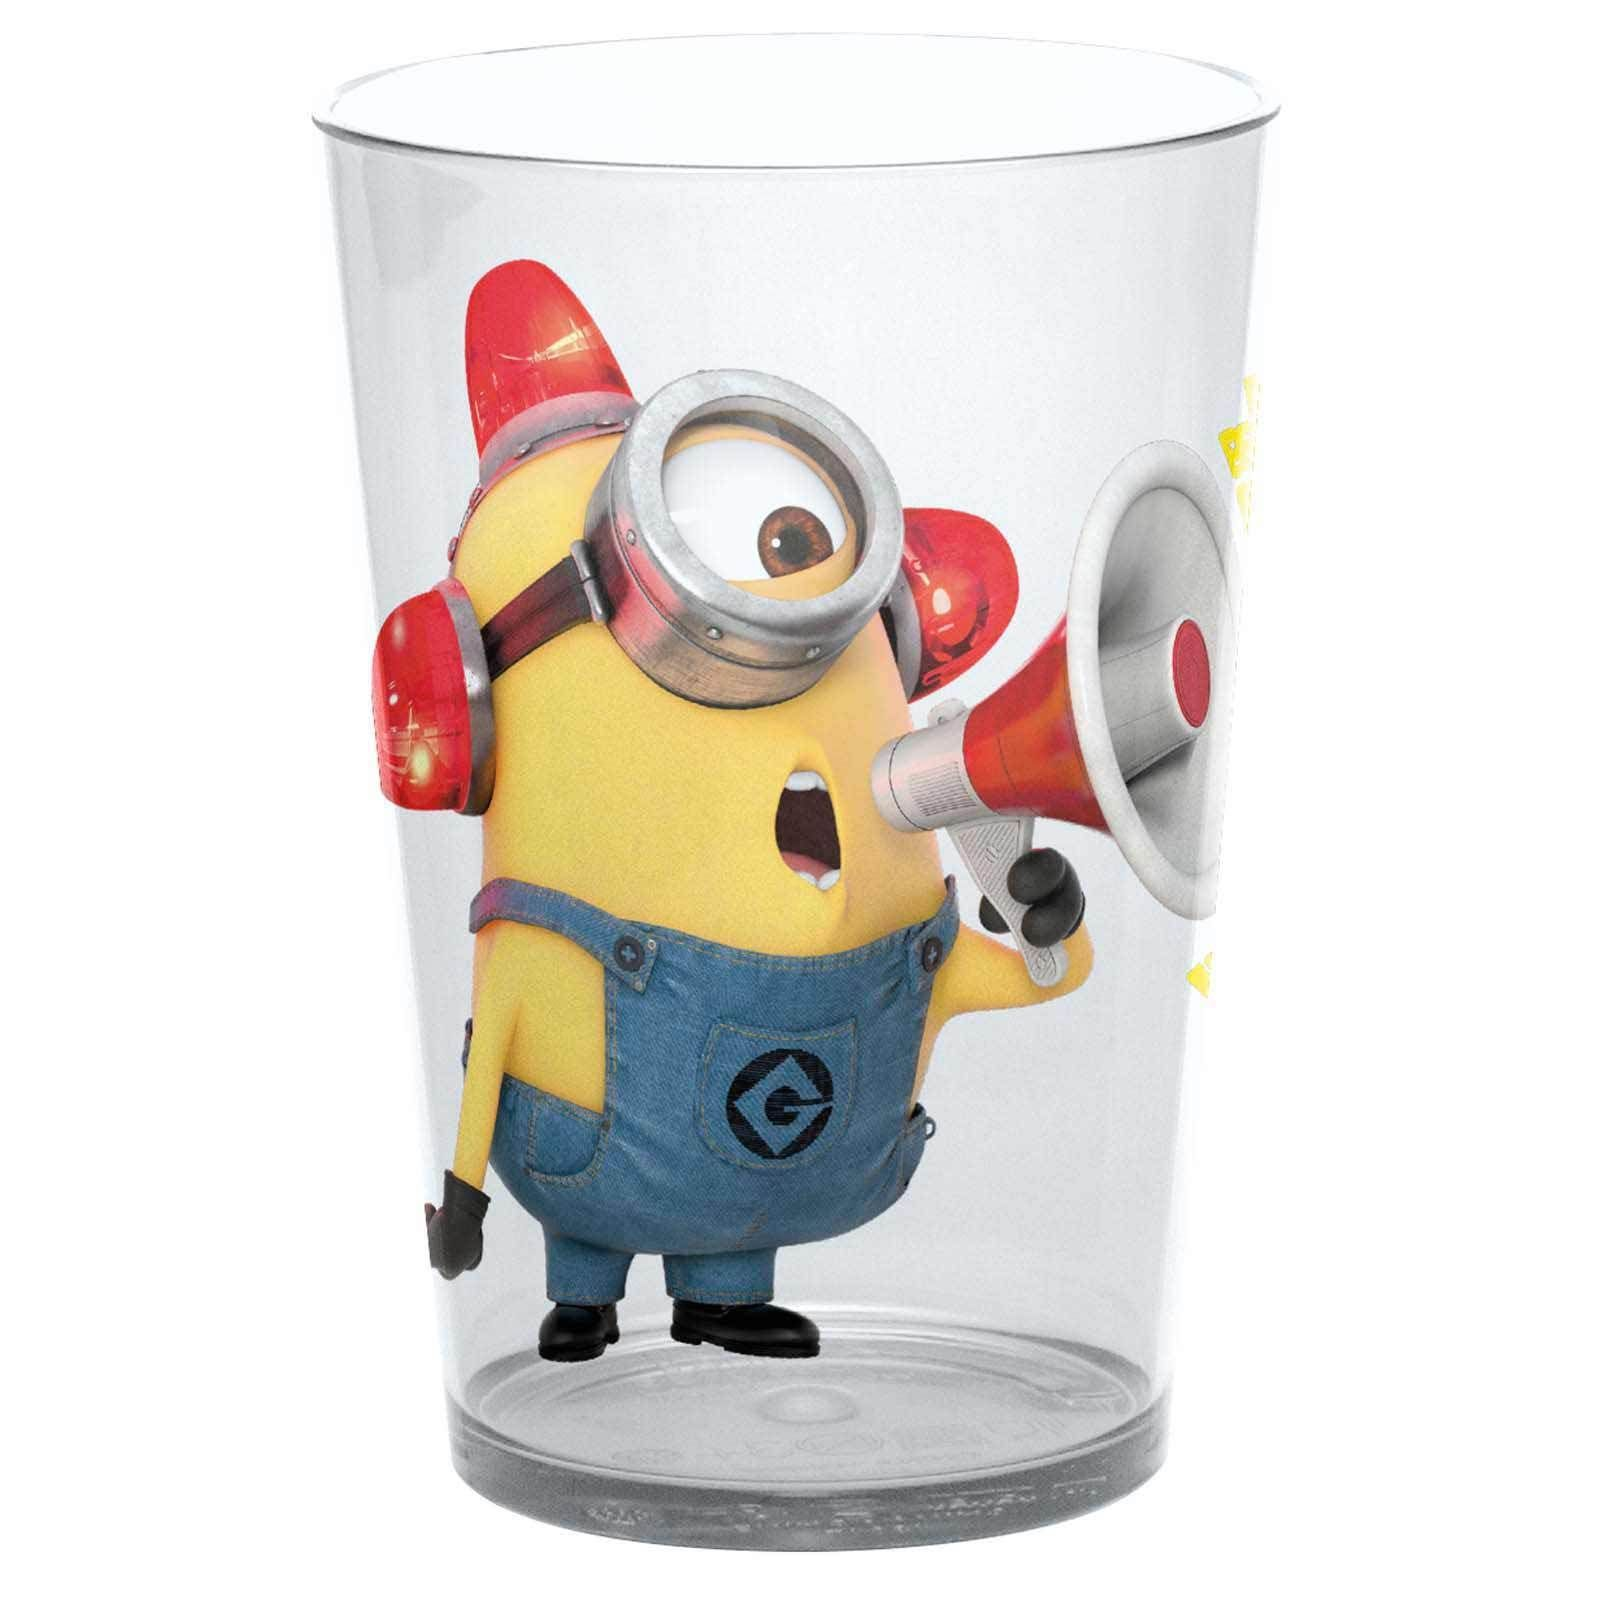 DESPICABLE ME MINIONS-bowl & cup breakfast set